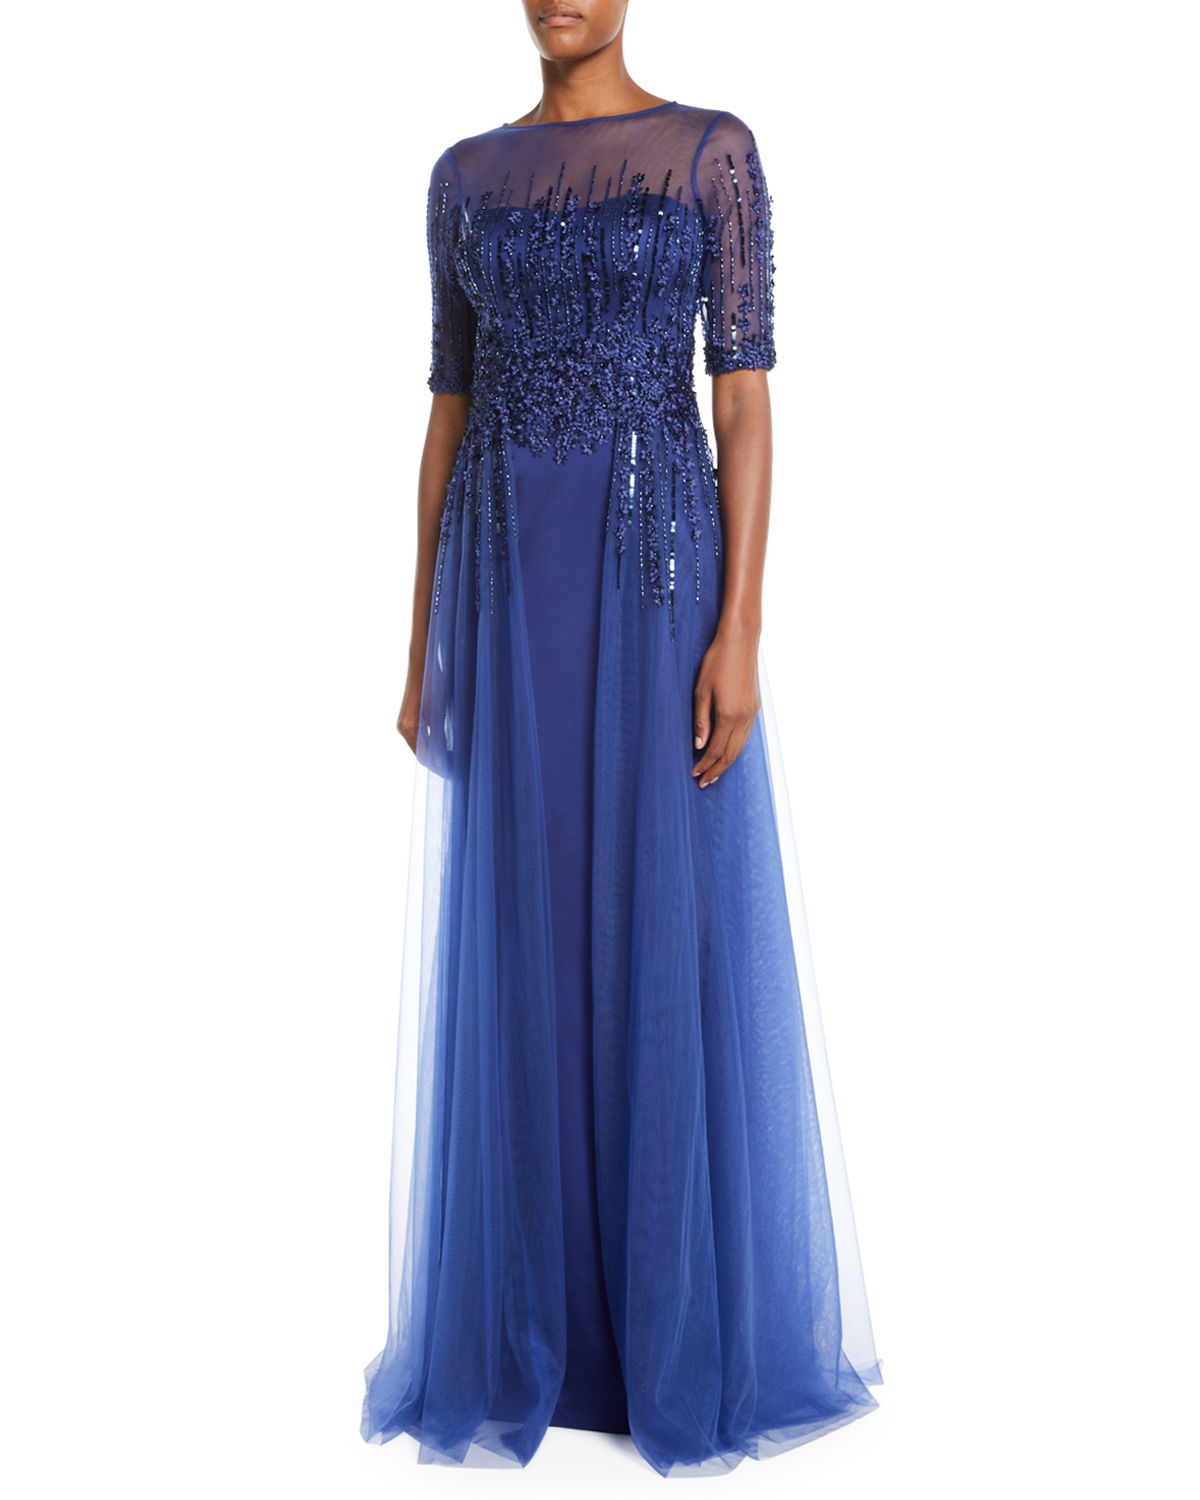 Rickie Freeman For Teri Jon Tops EMBELLISHED SATIN ILLUSION TRUMPET GOWN